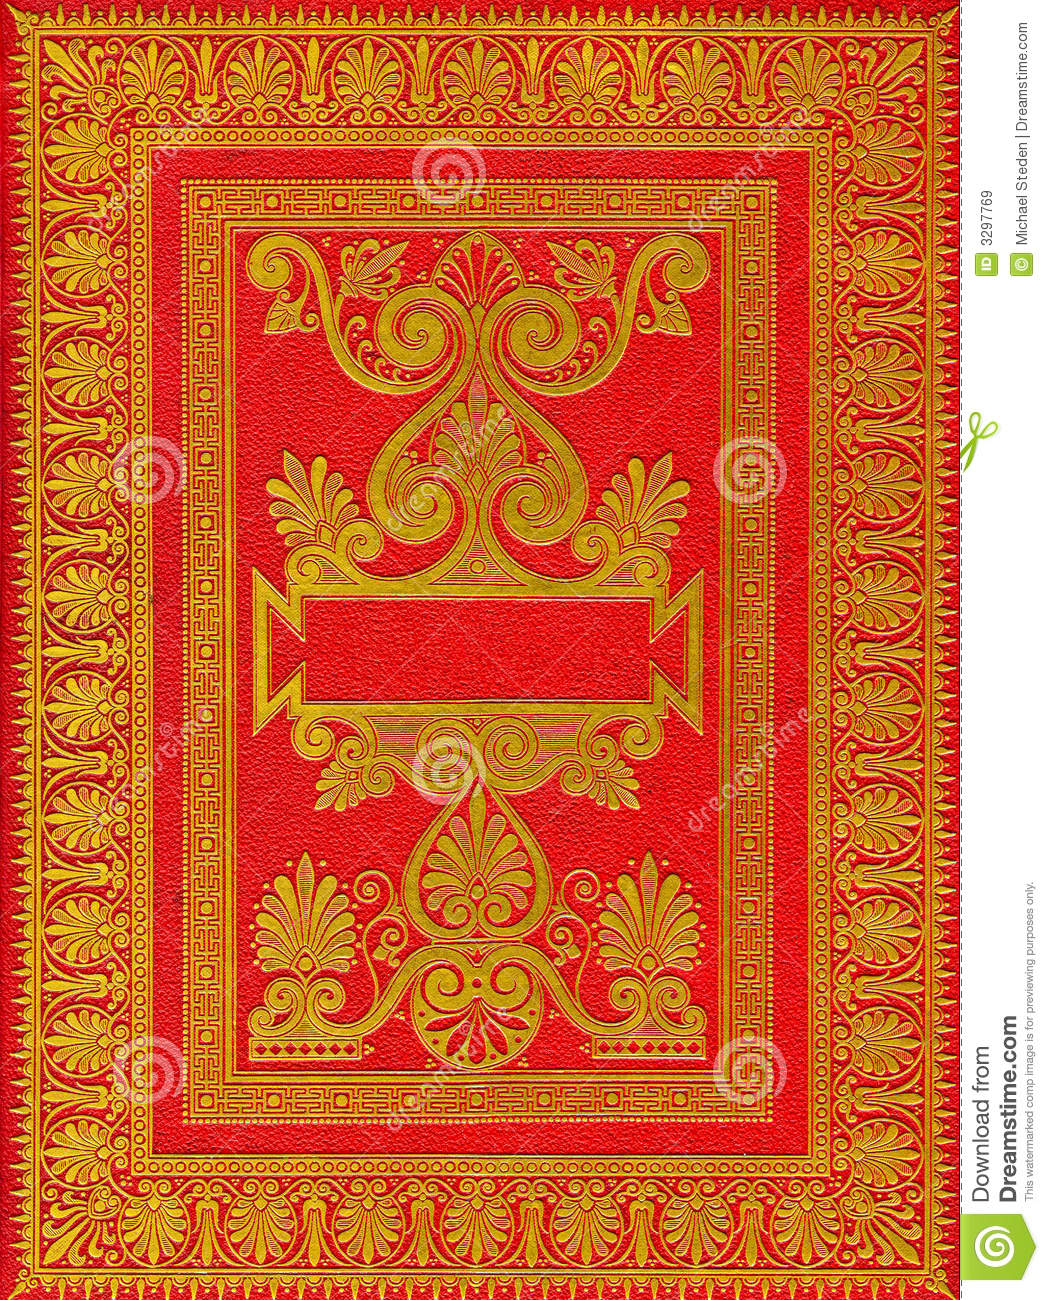 Old Red Book Cover ~ Old ancient red book cover stock illustration image of